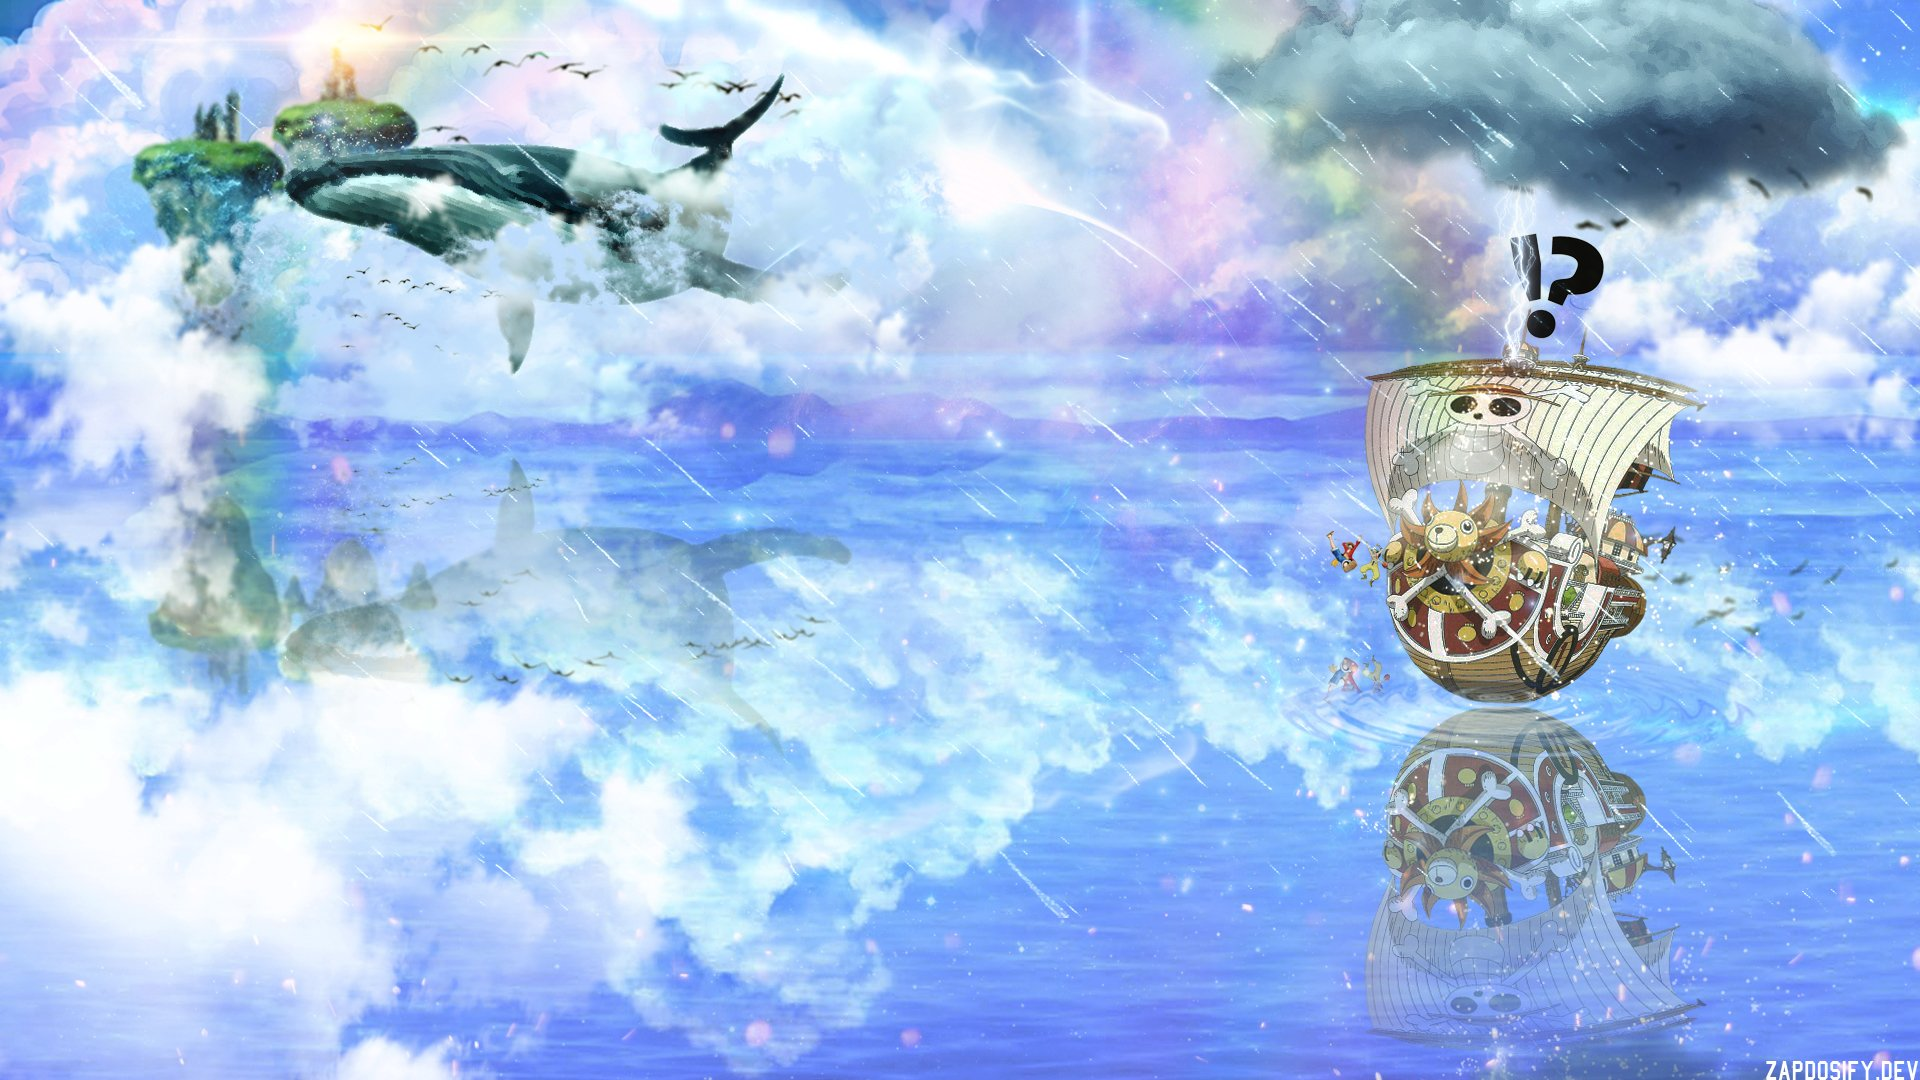 One Piece Thousand Sunny Wallpaper Hd